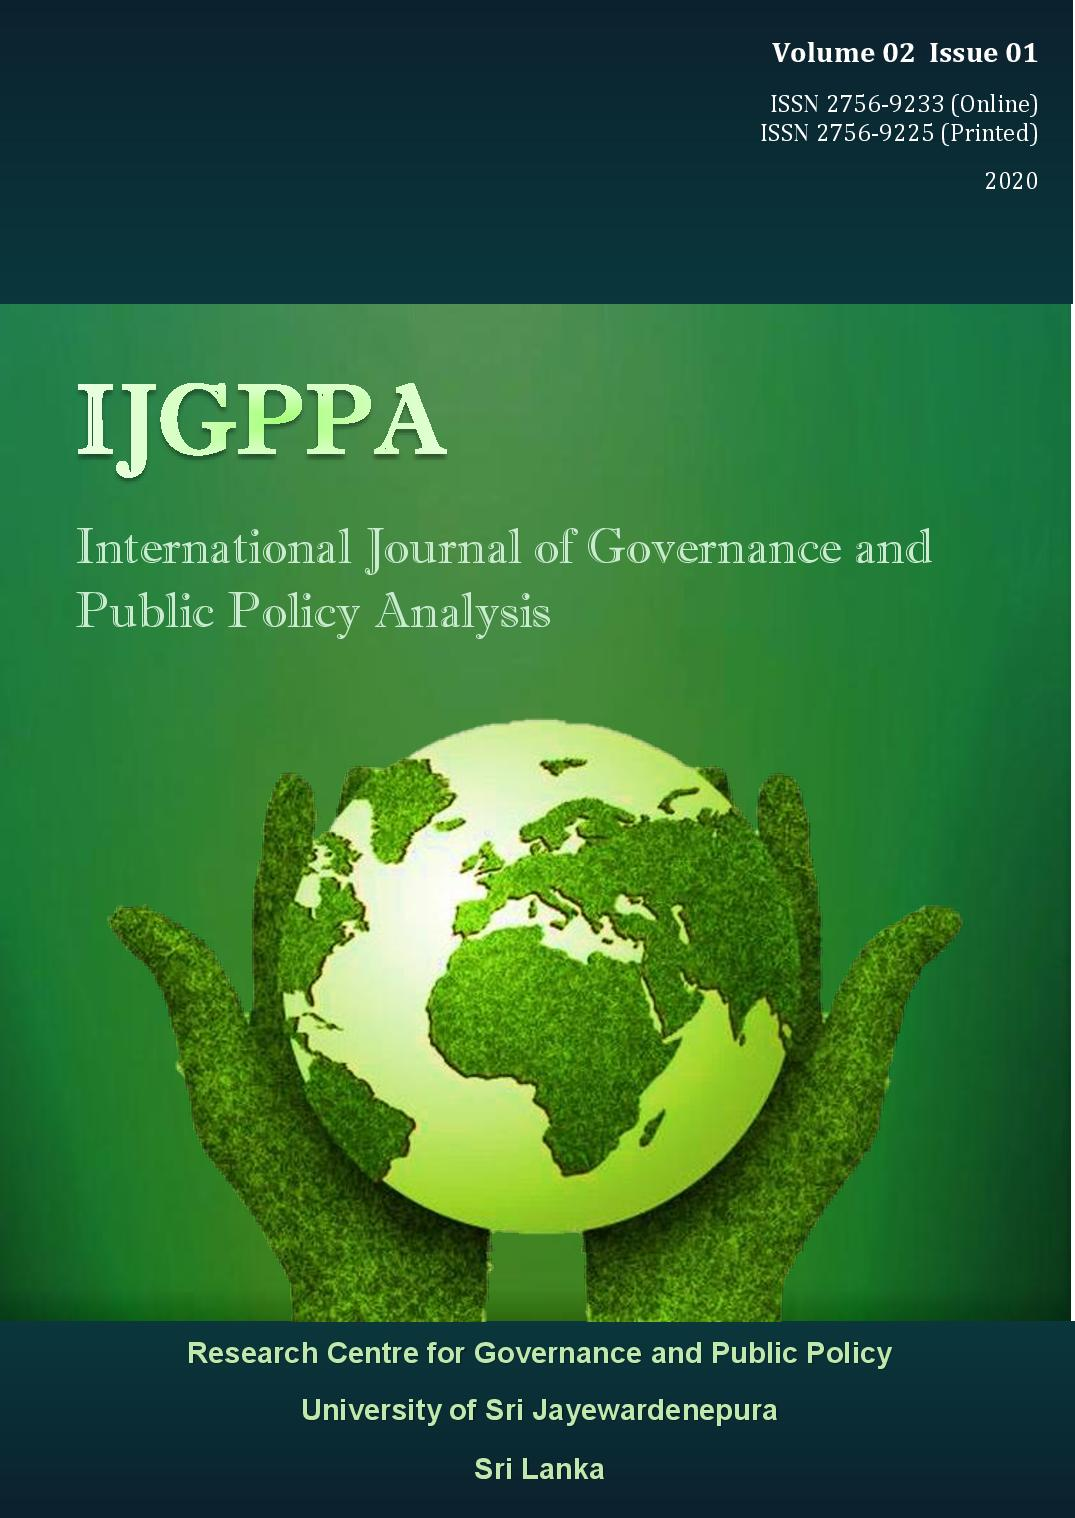 View Vol. 2 No. 1 (2020): International Journal of Governance and Public Policy Analysis (IJGPPA) - 2020